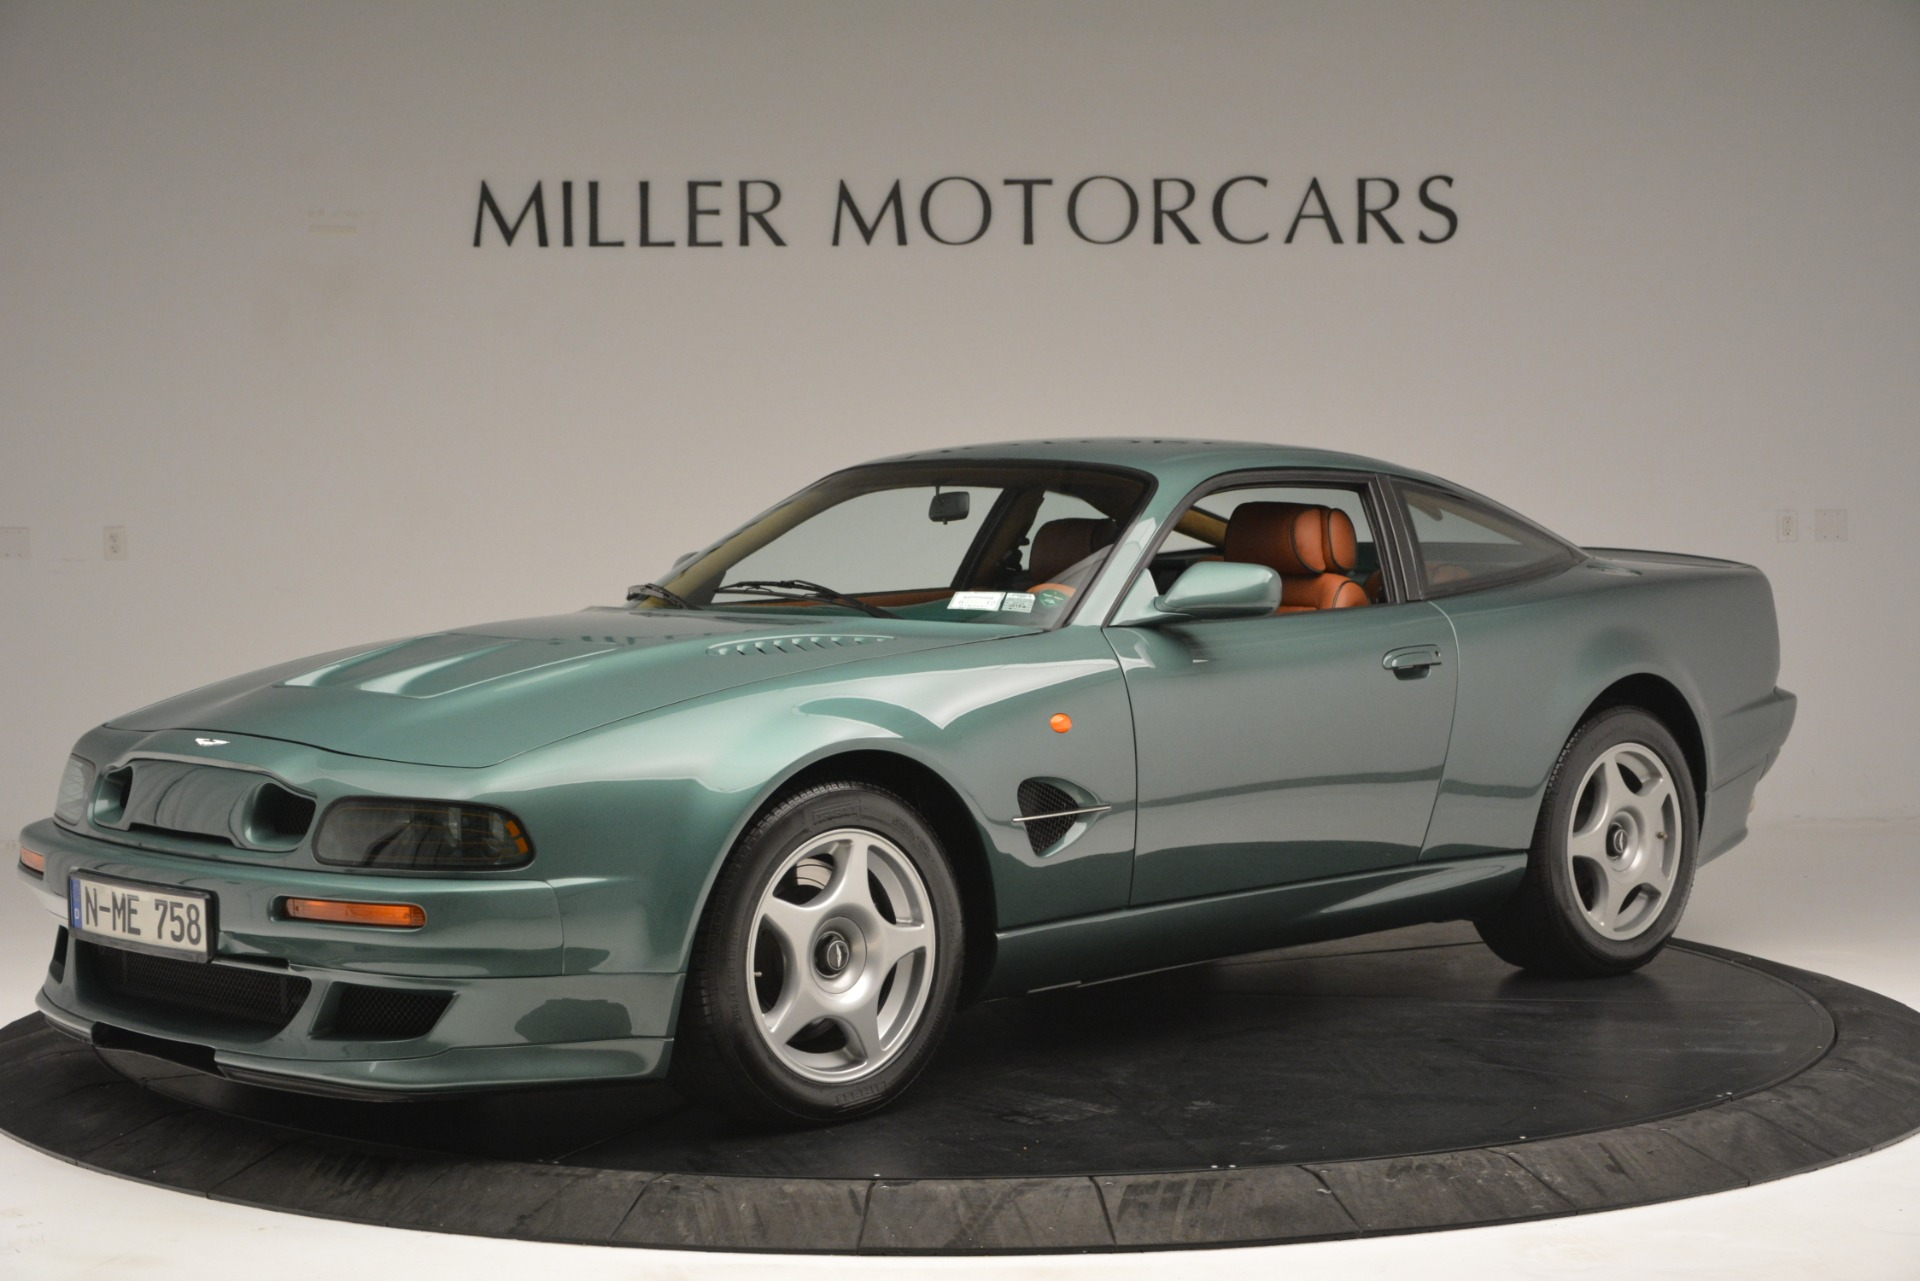 Used 1999 Aston Martin V8 Vantage Le Mans V600 Coupe For Sale In Greenwich, CT